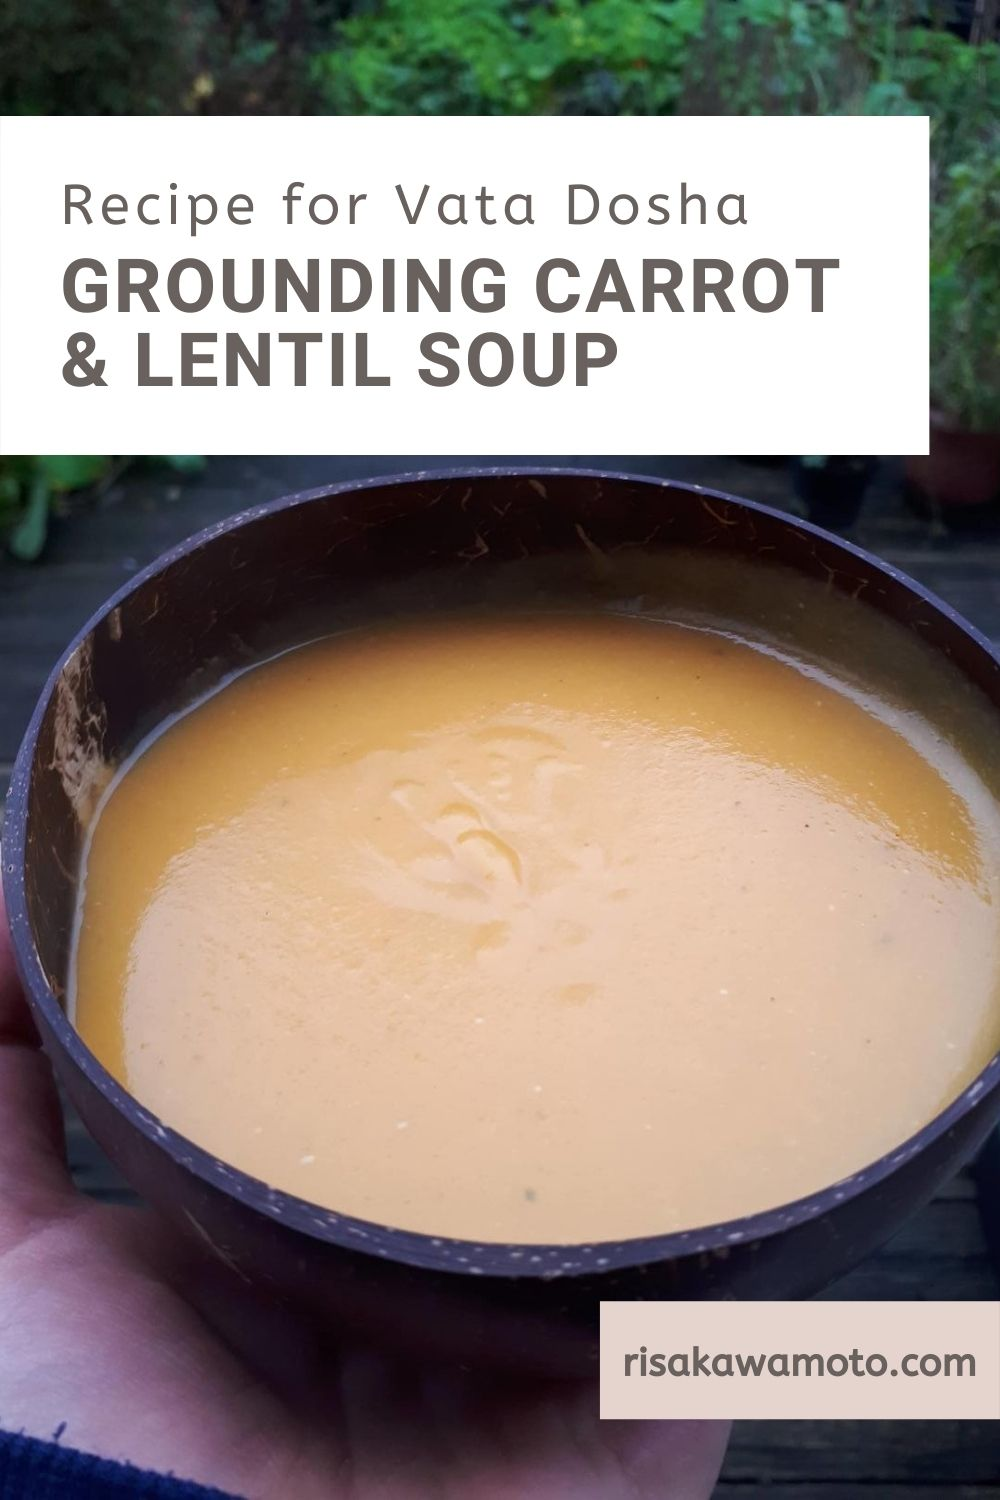 Vata Recipe: Grounding Carrot & Lentil Soup